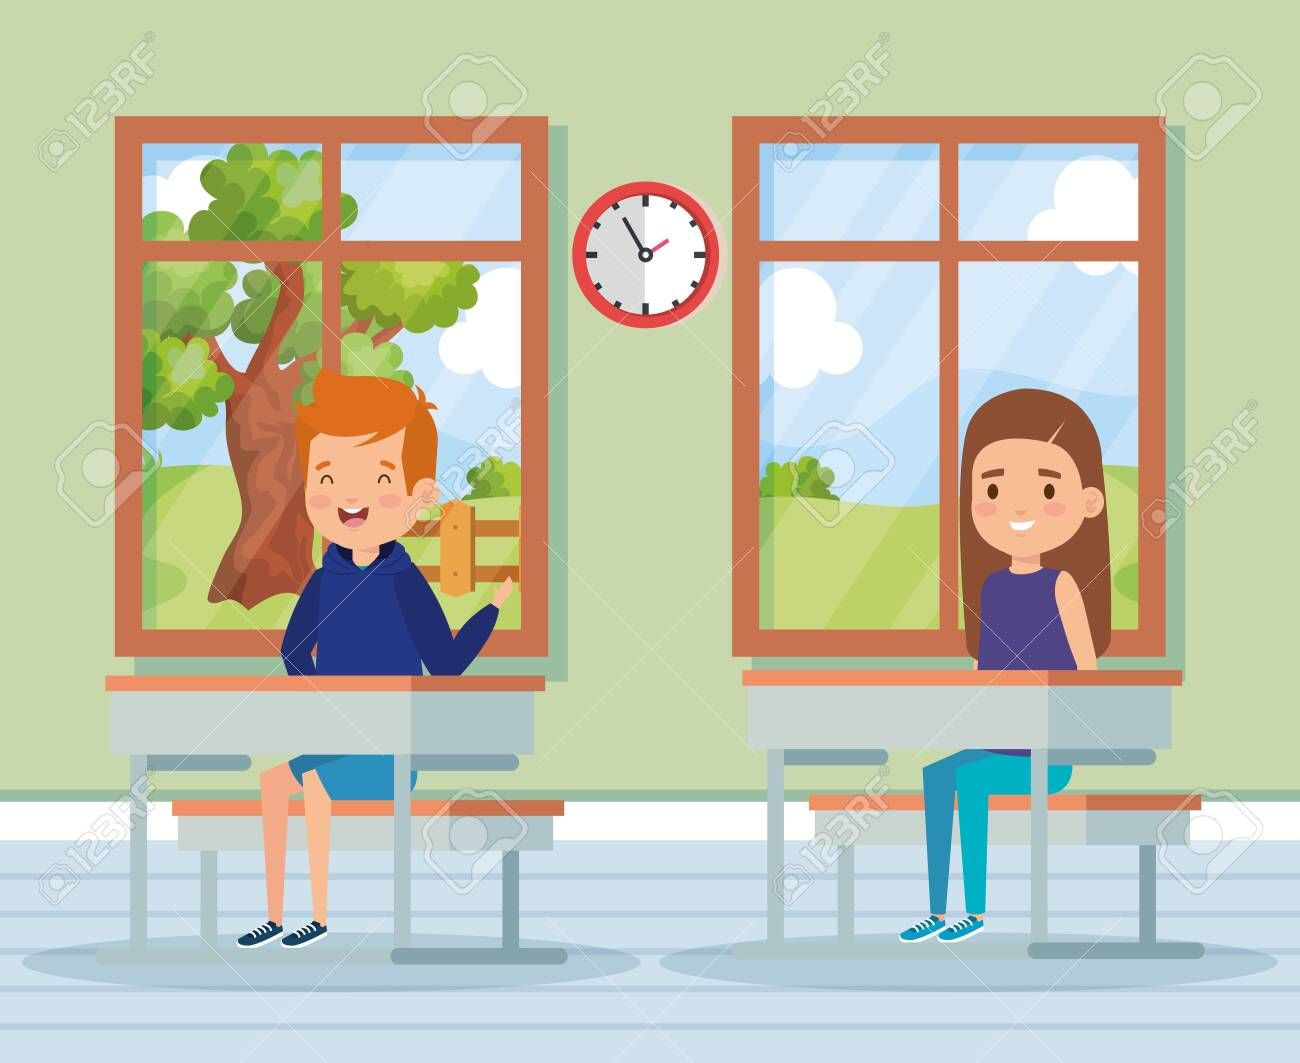 boy and girl childrem education in the classroom with desk and windows vector illustration ,